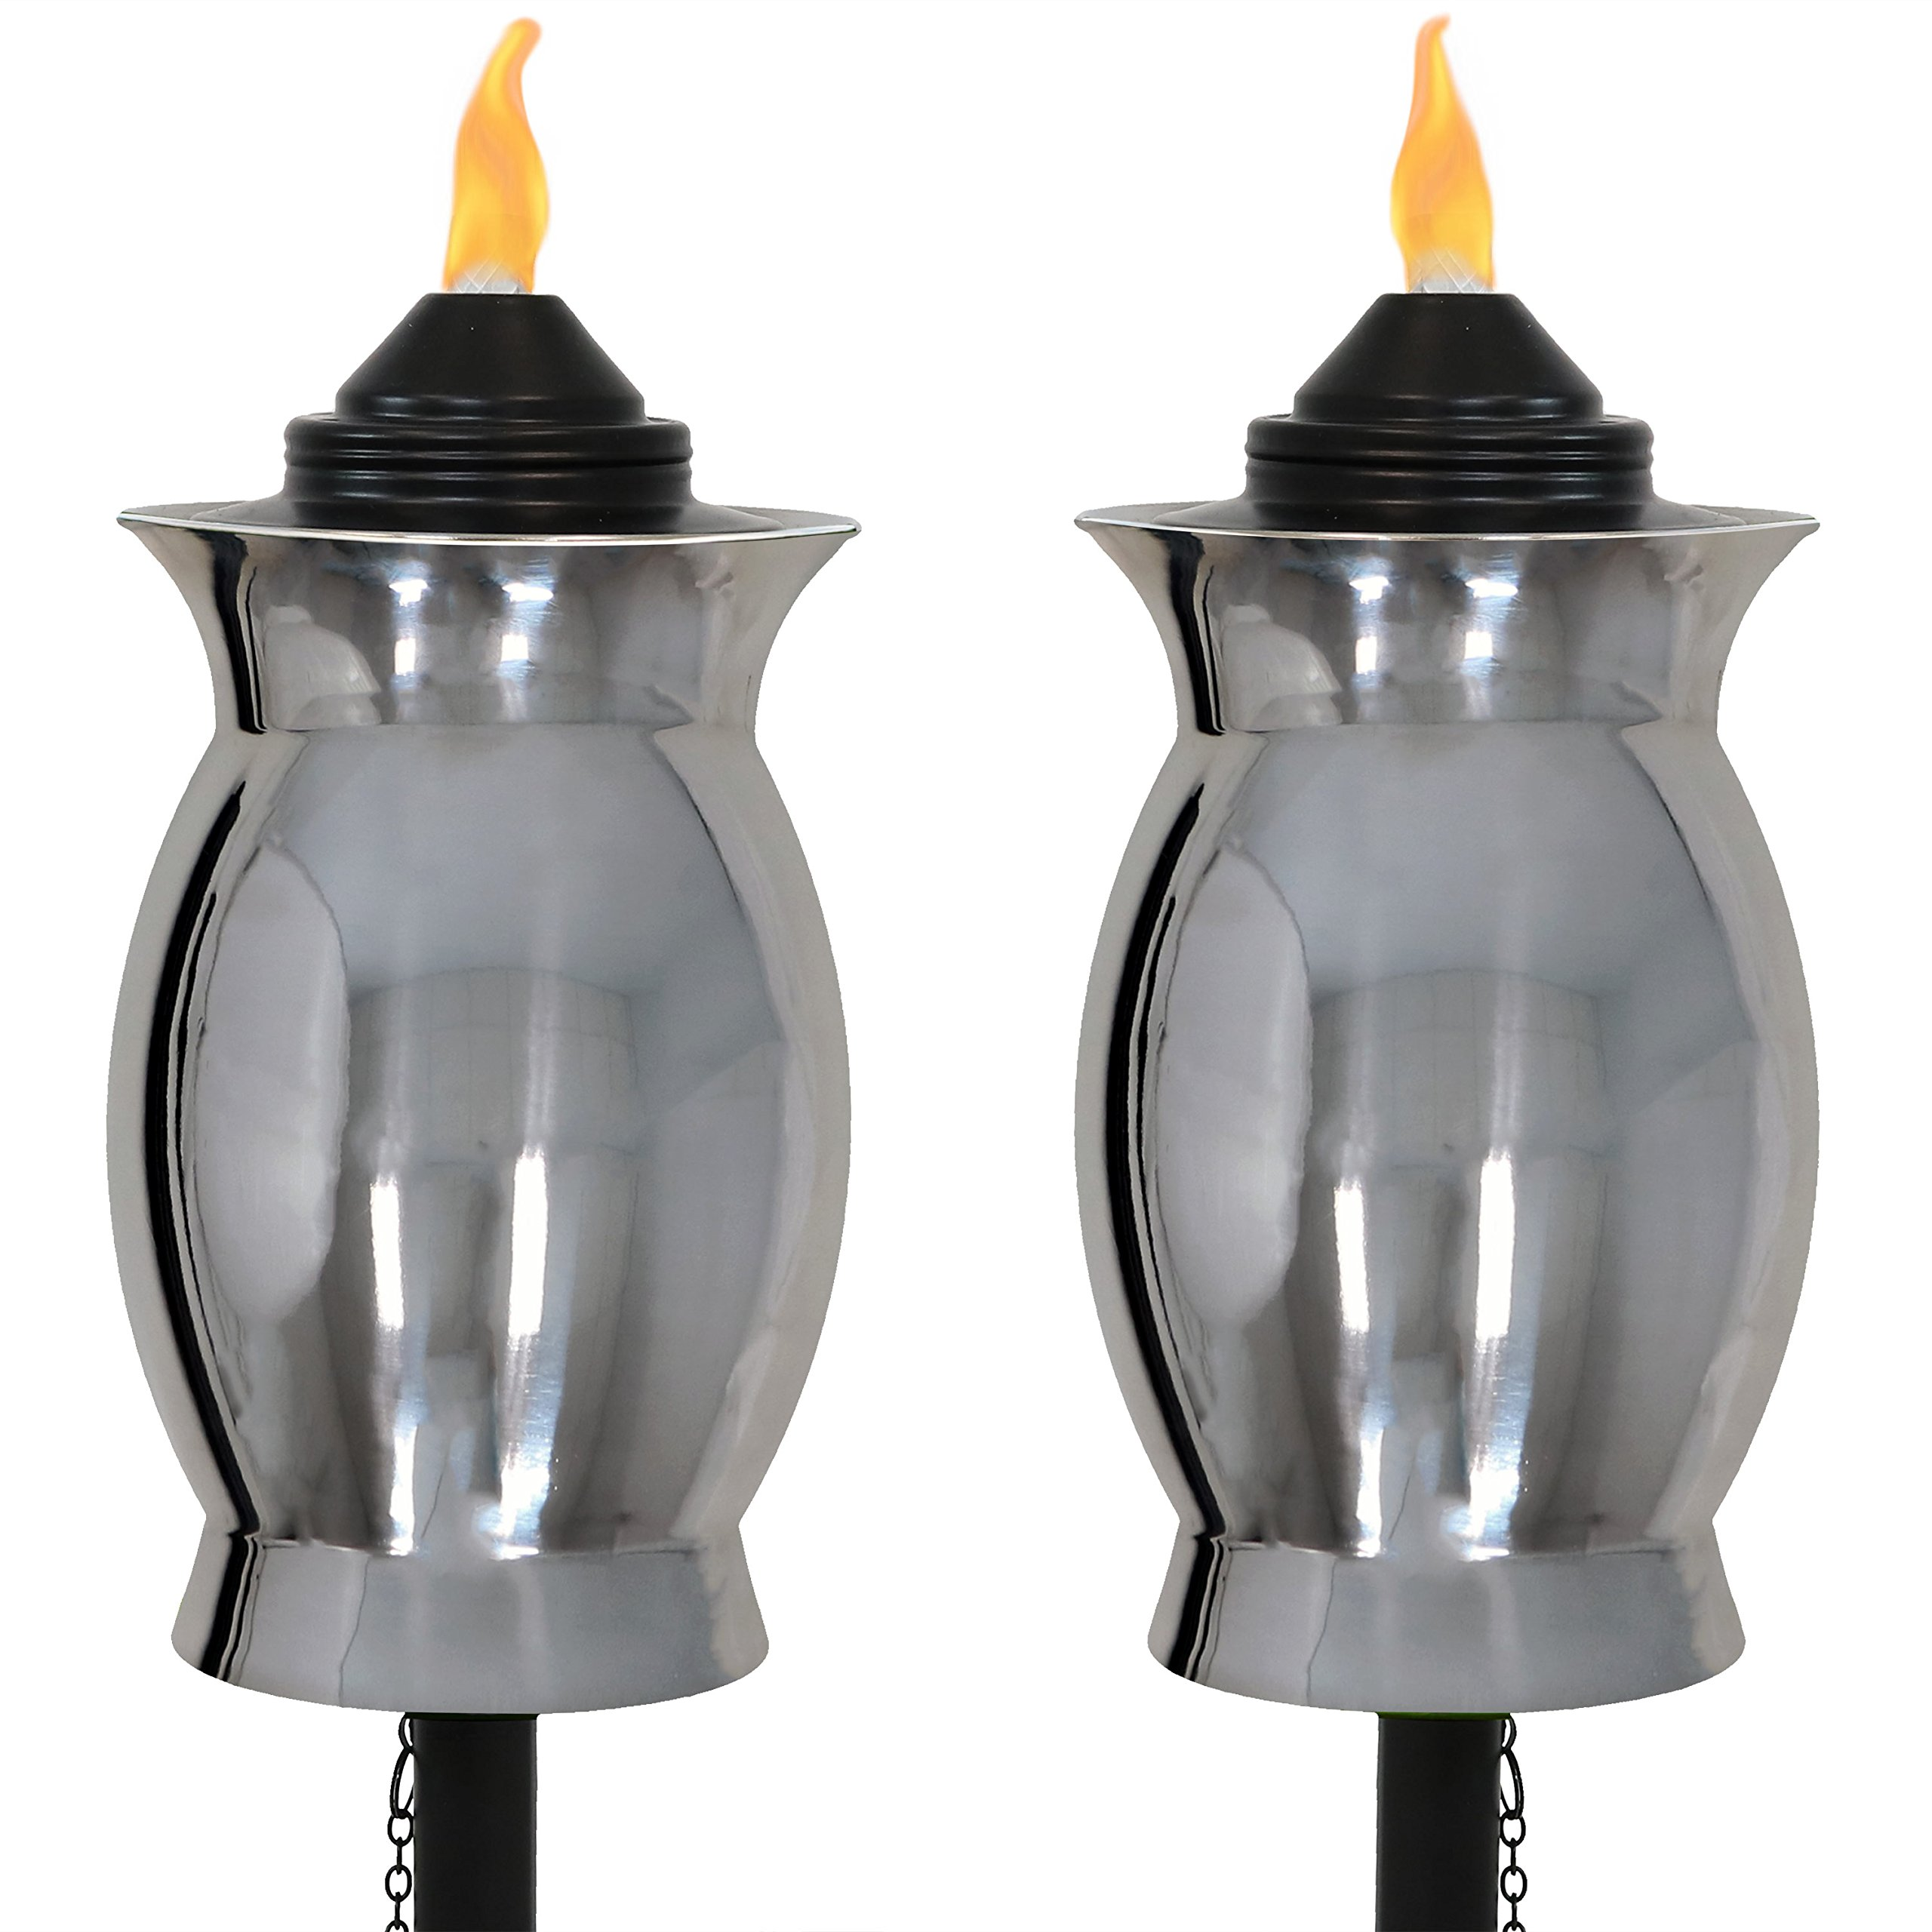 Sunnydaze Stainless Steel Outdoor Torches with Black Snuffer, Metal Patio Citronella Torch, 23- to 65-Inch Adjustable Height, 3-in-1, Set of 2